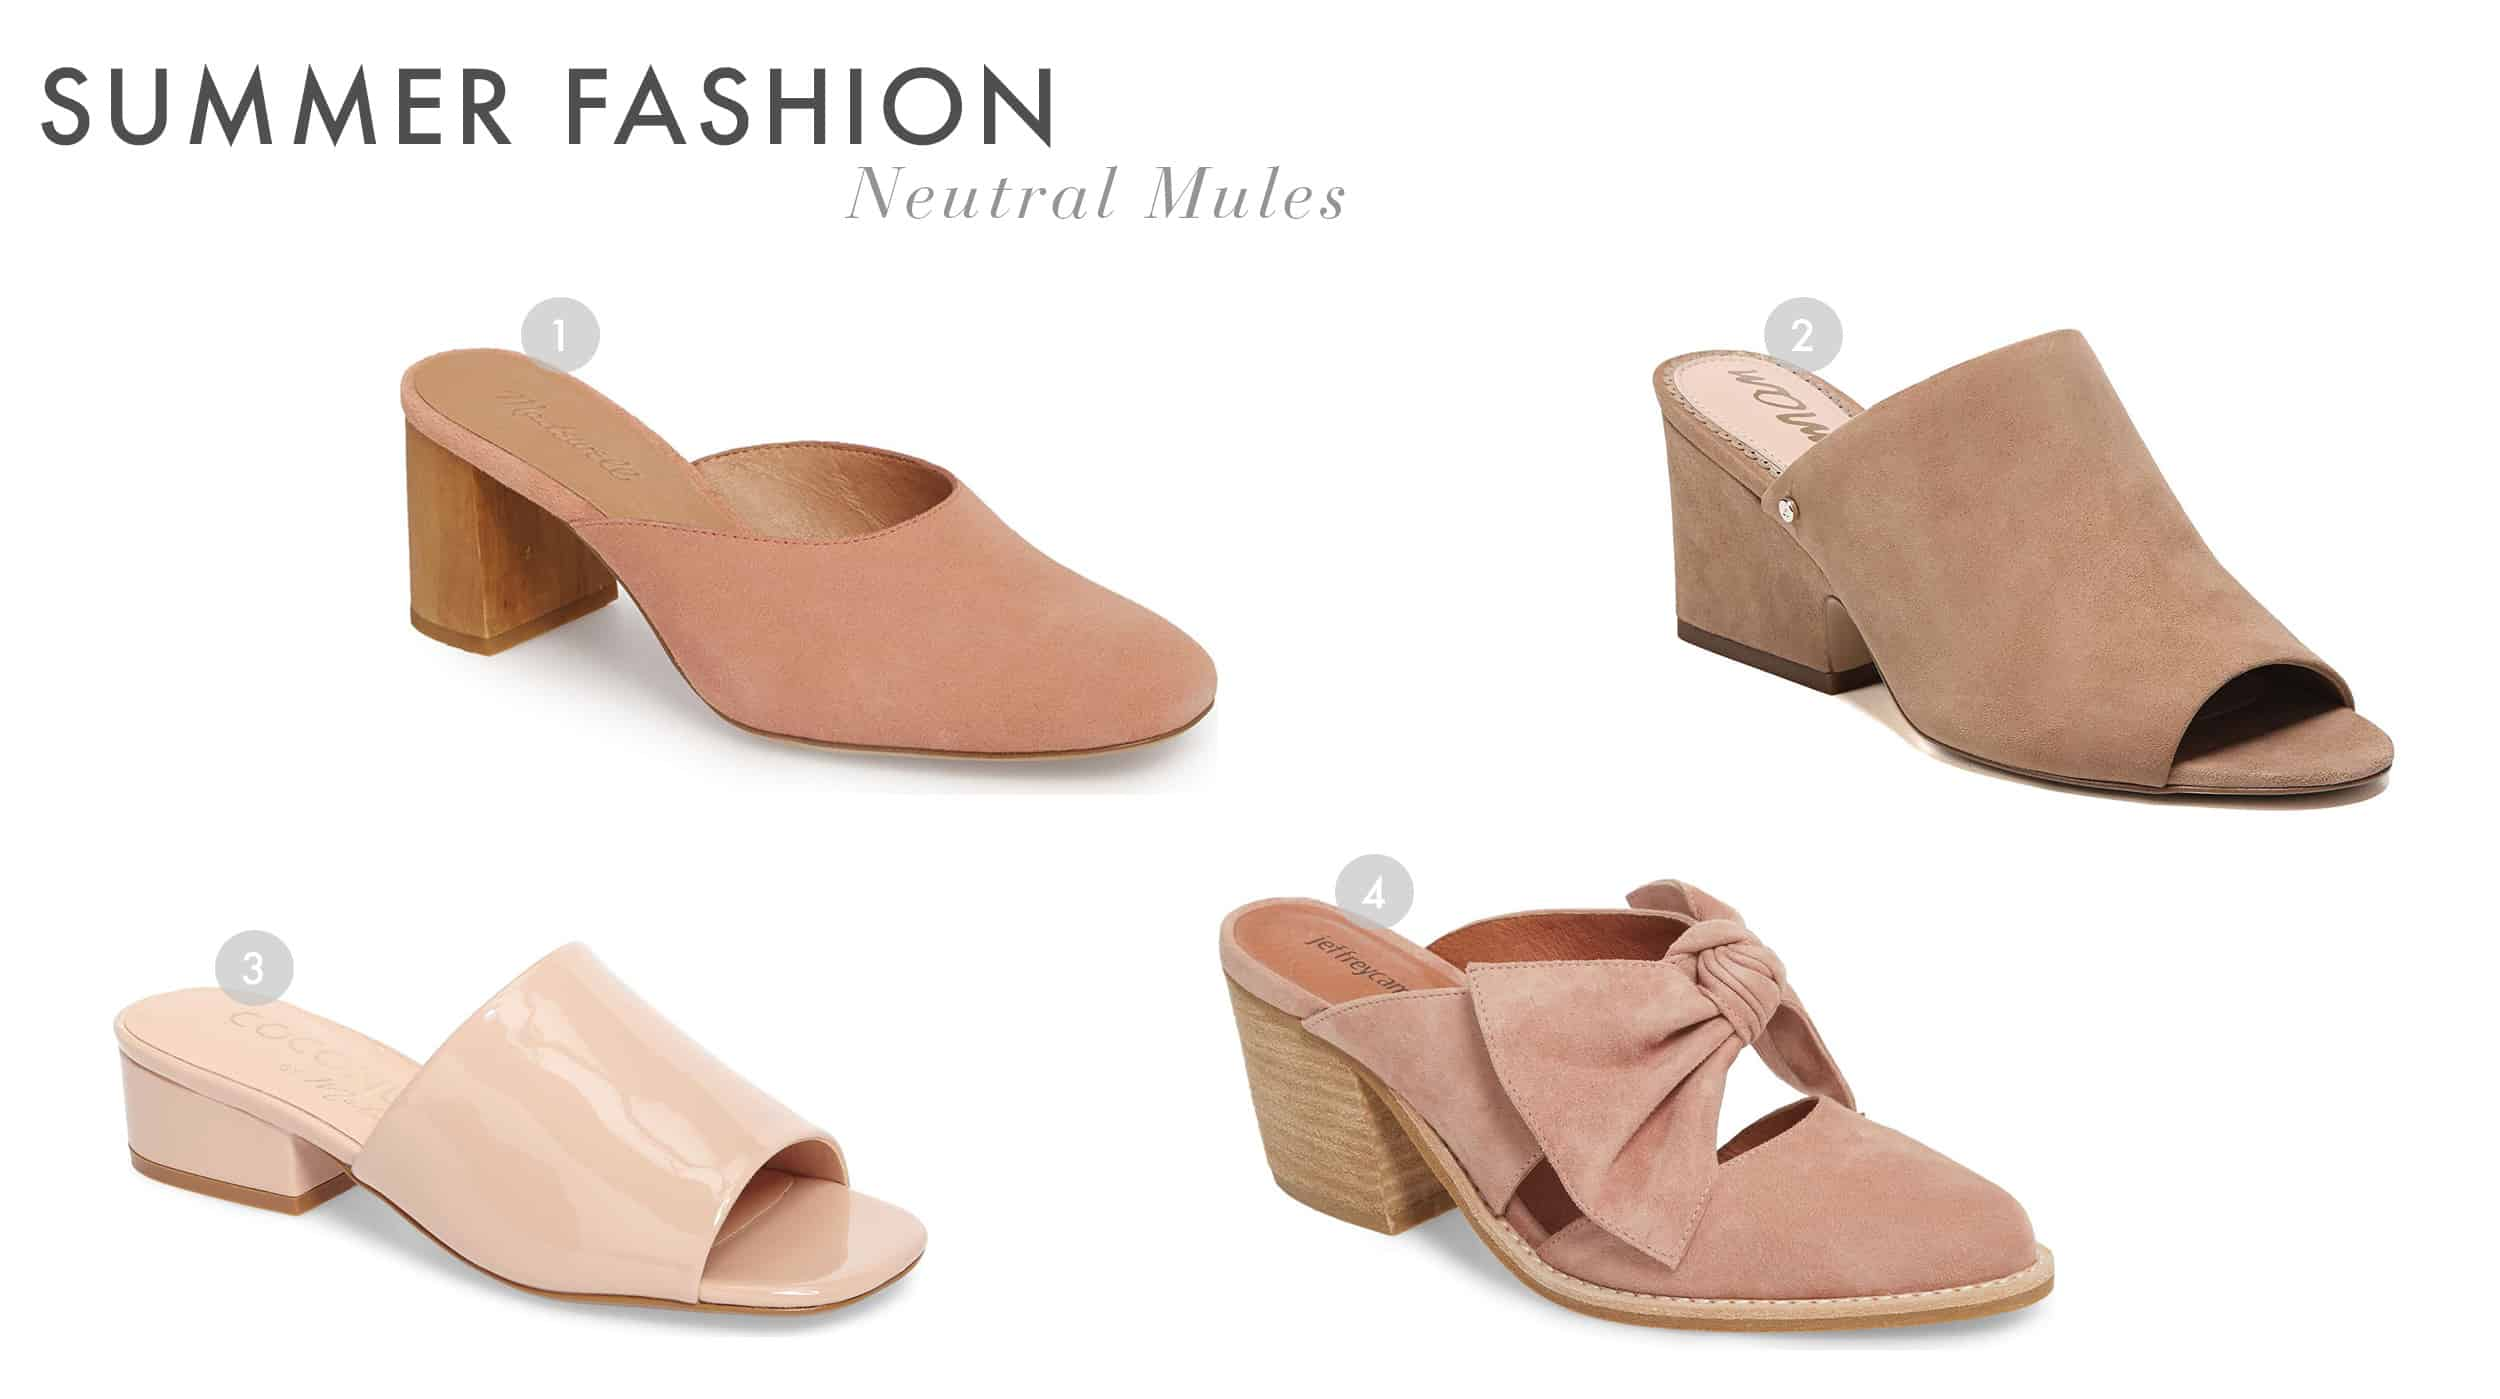 Emily Henderson Summer Fashion 2018 Neutral Shoes Slip Ons